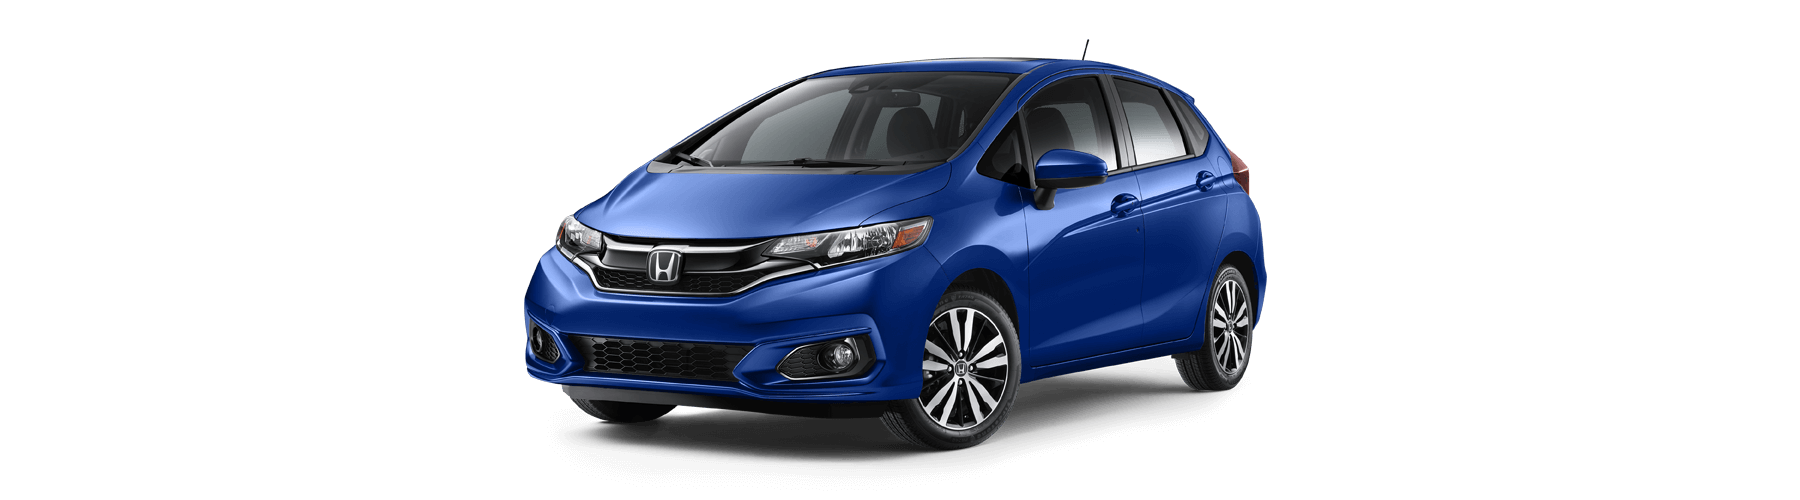 2019 Honda Fit Front Angle